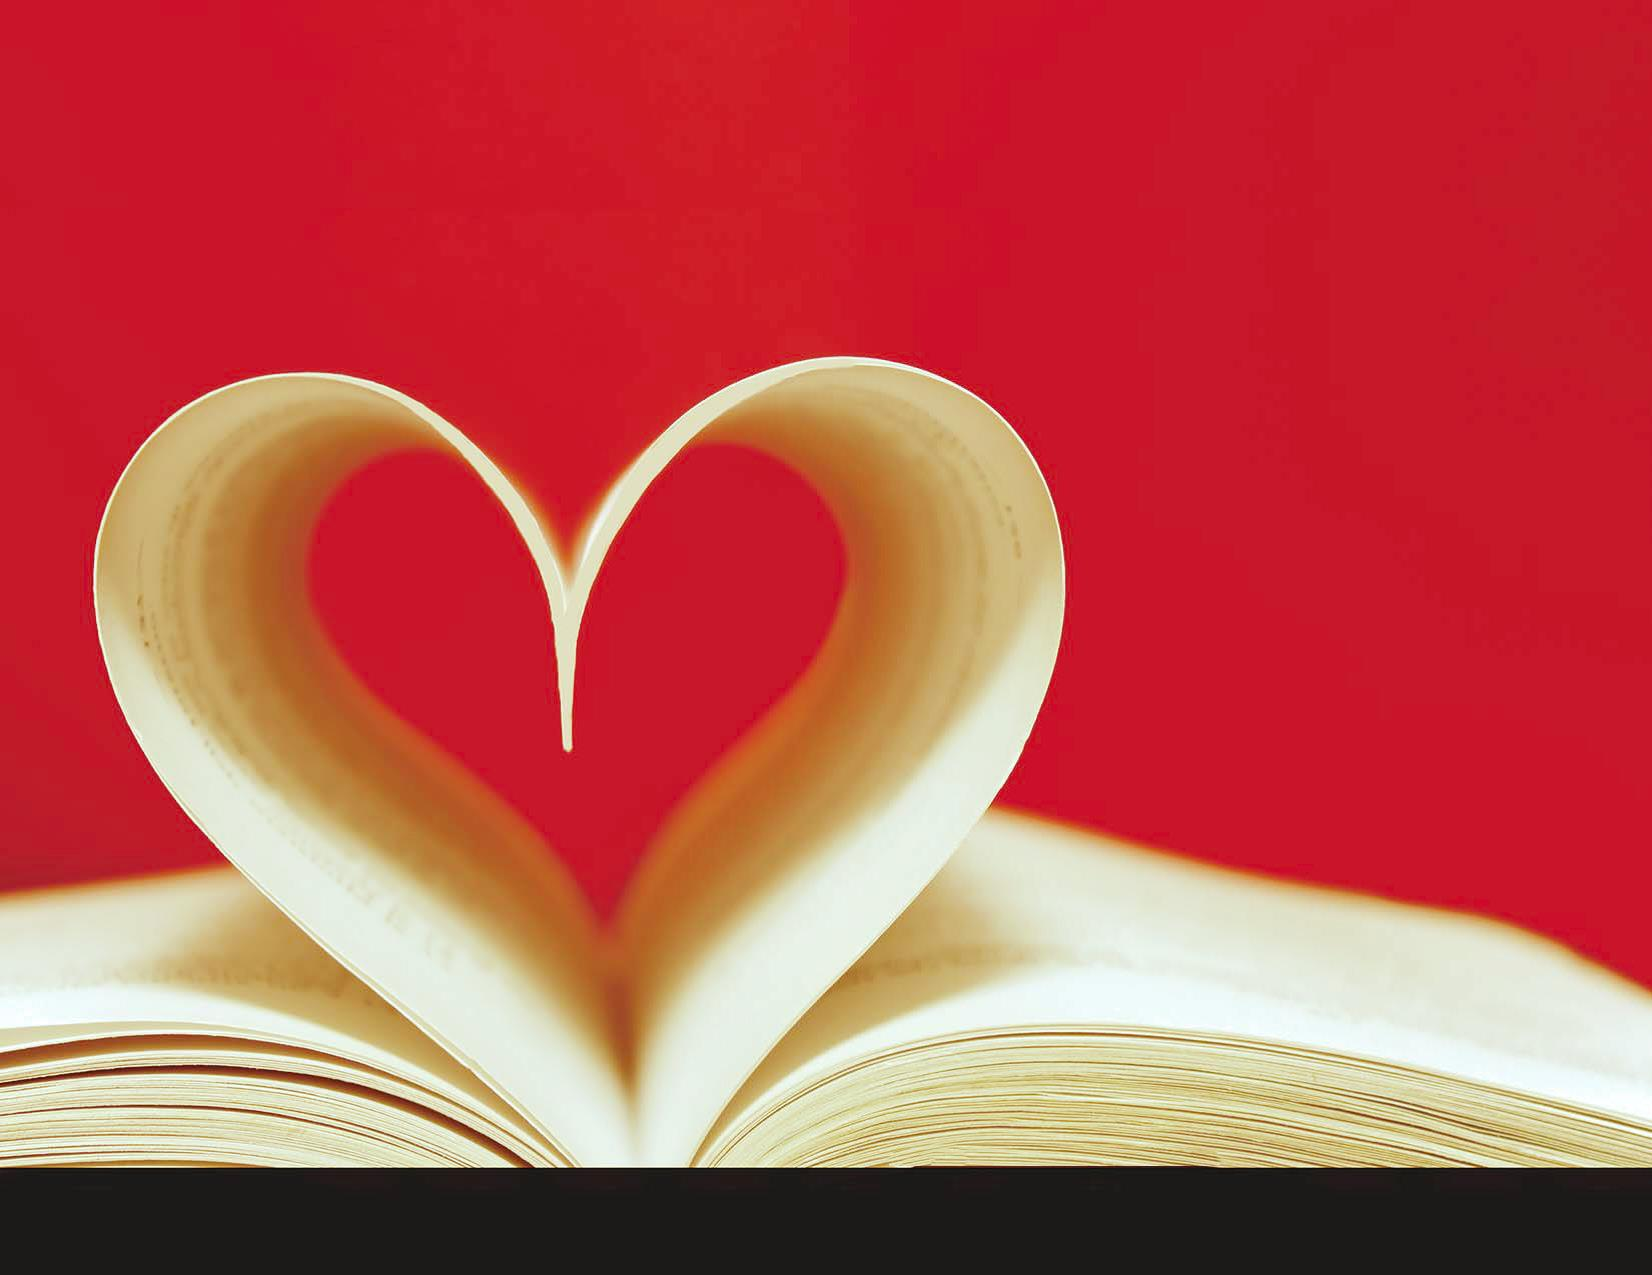 ... Library Sale: Just in Time for Valentine's Day - The Duster Today